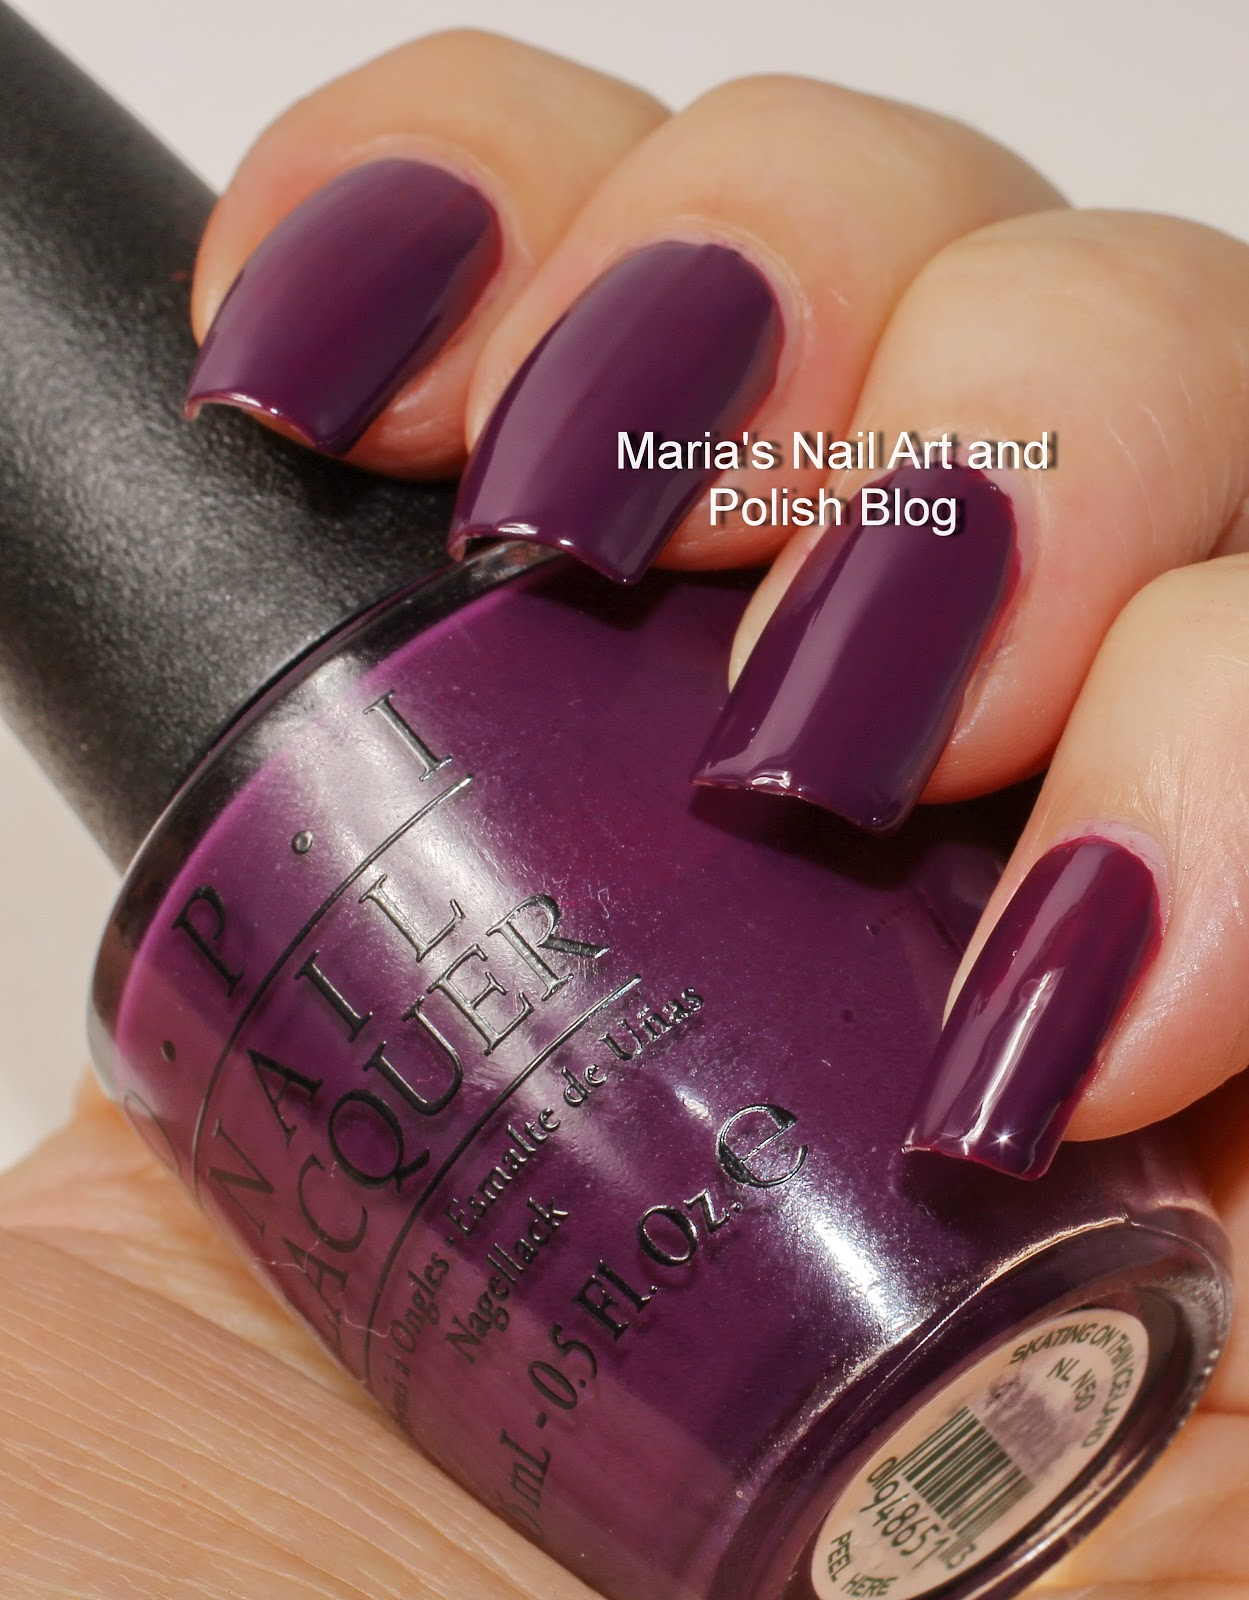 Skating On Thin Iceland Is A Beautiful Eggplant Purple Cream I Love This Shade You See Two Easy Coats No Top Coat